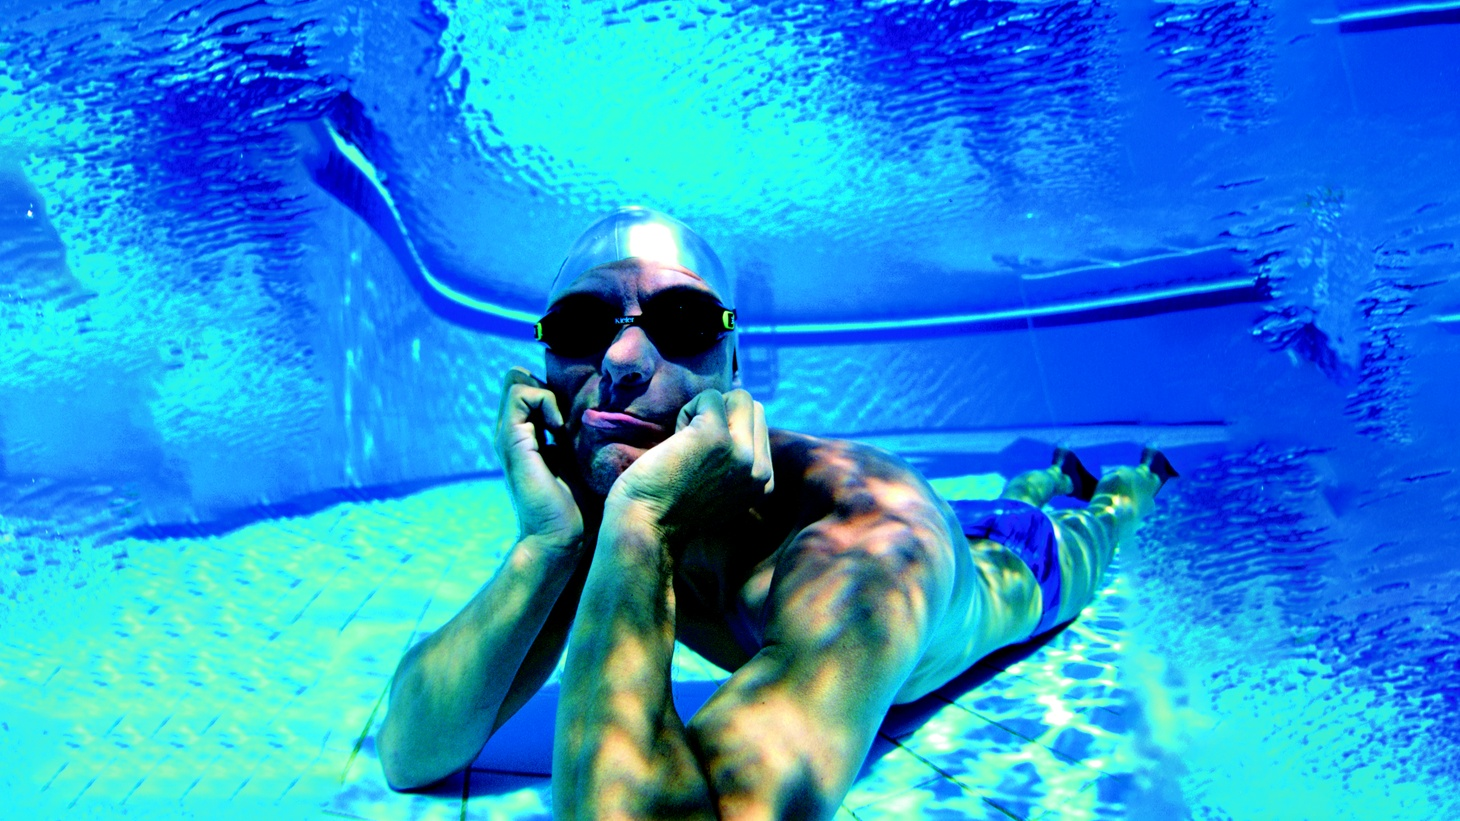 Stig Severinsen at the bottom of a swimming pool.